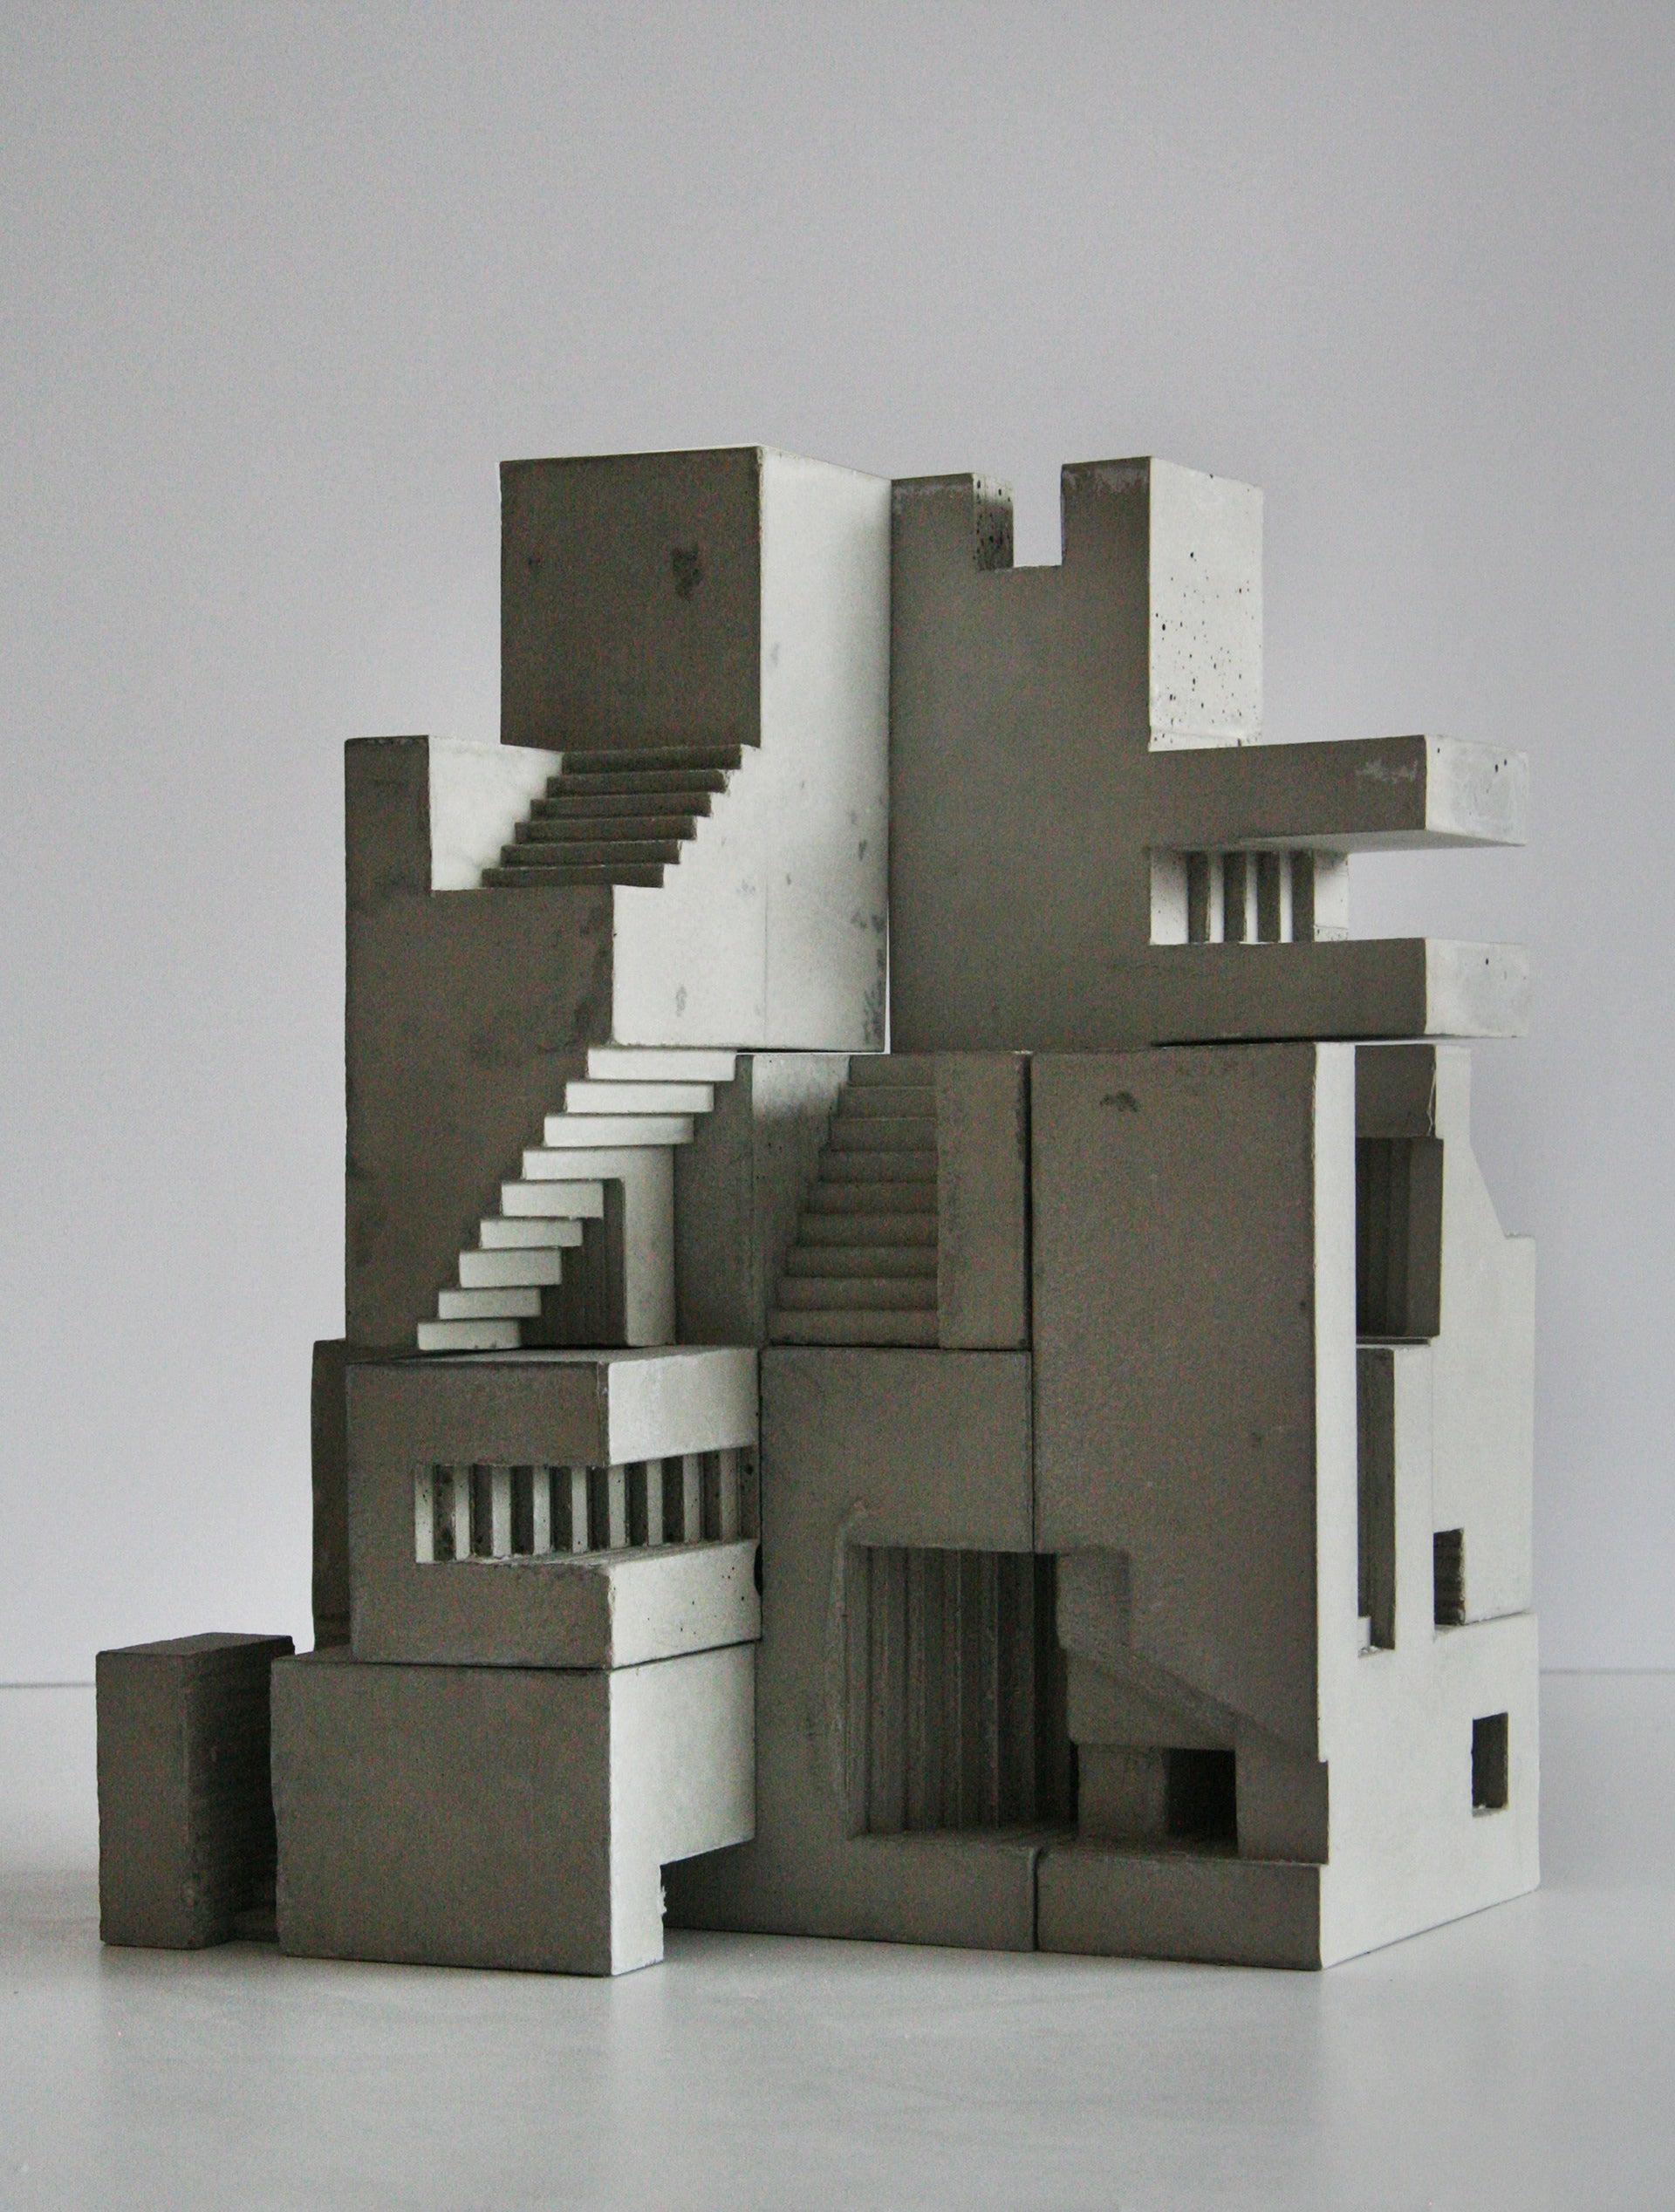 Small geometrical concrete building with stairs